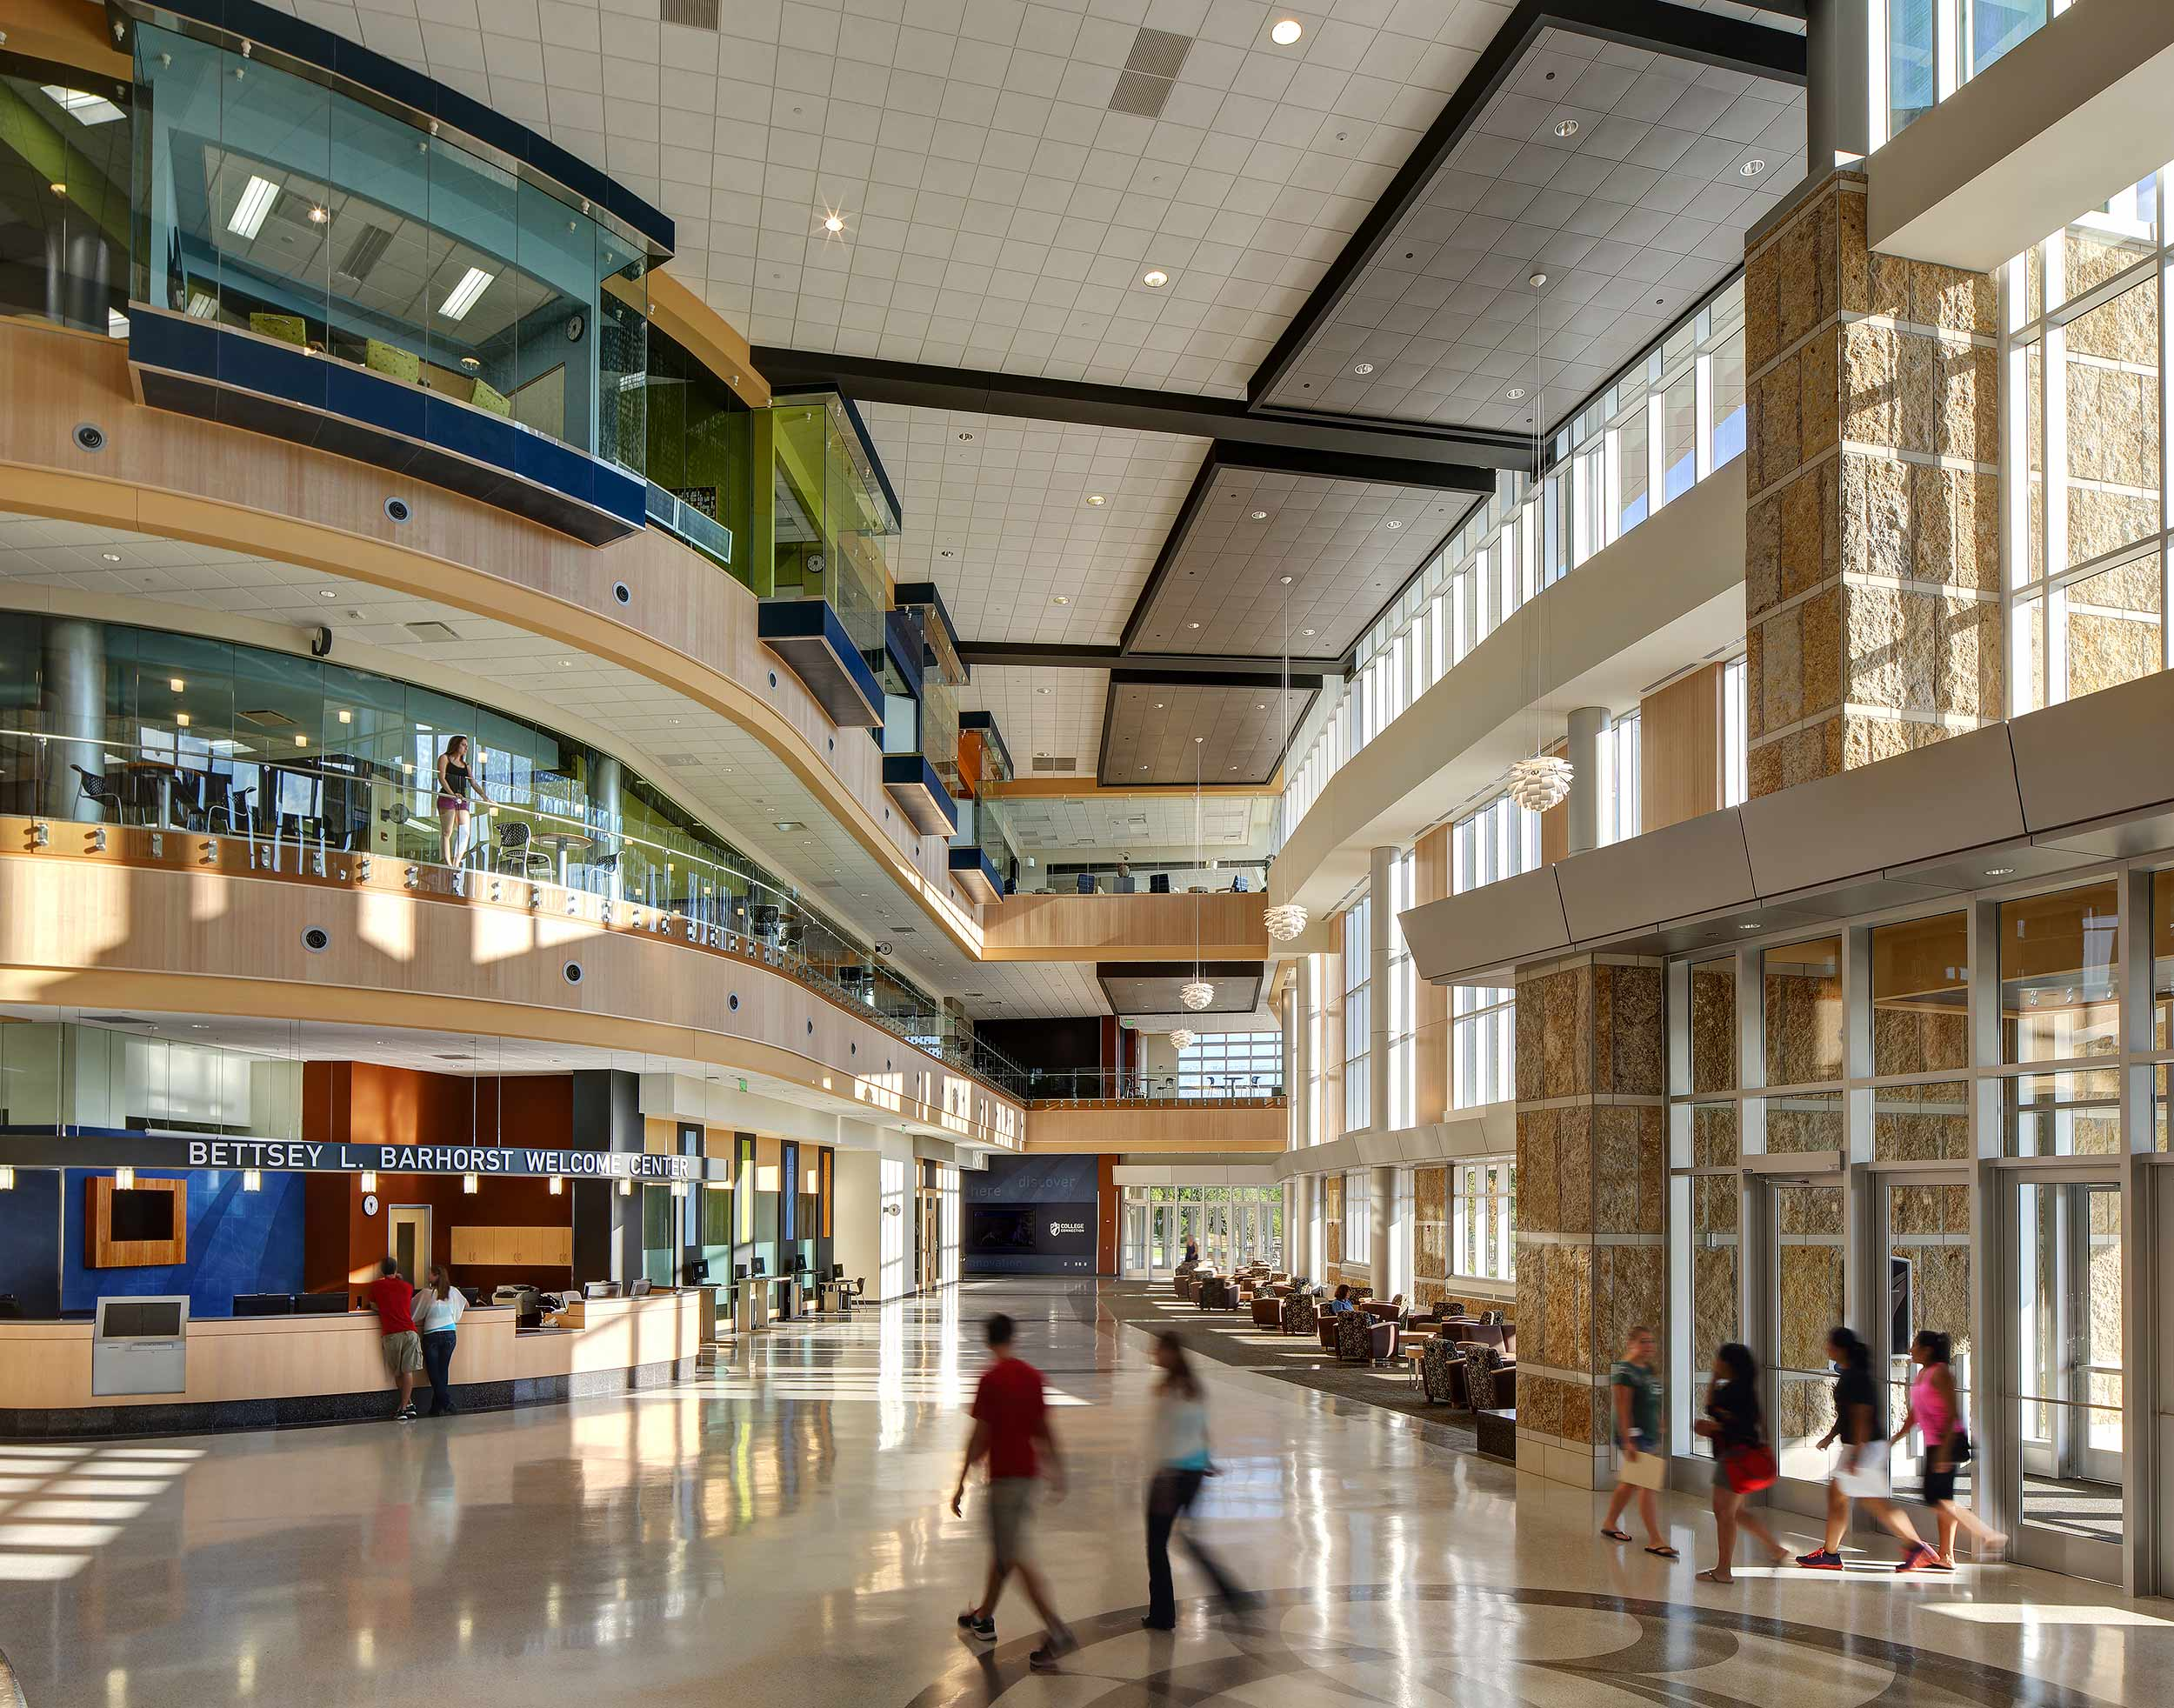 Madison commercial architectural photography